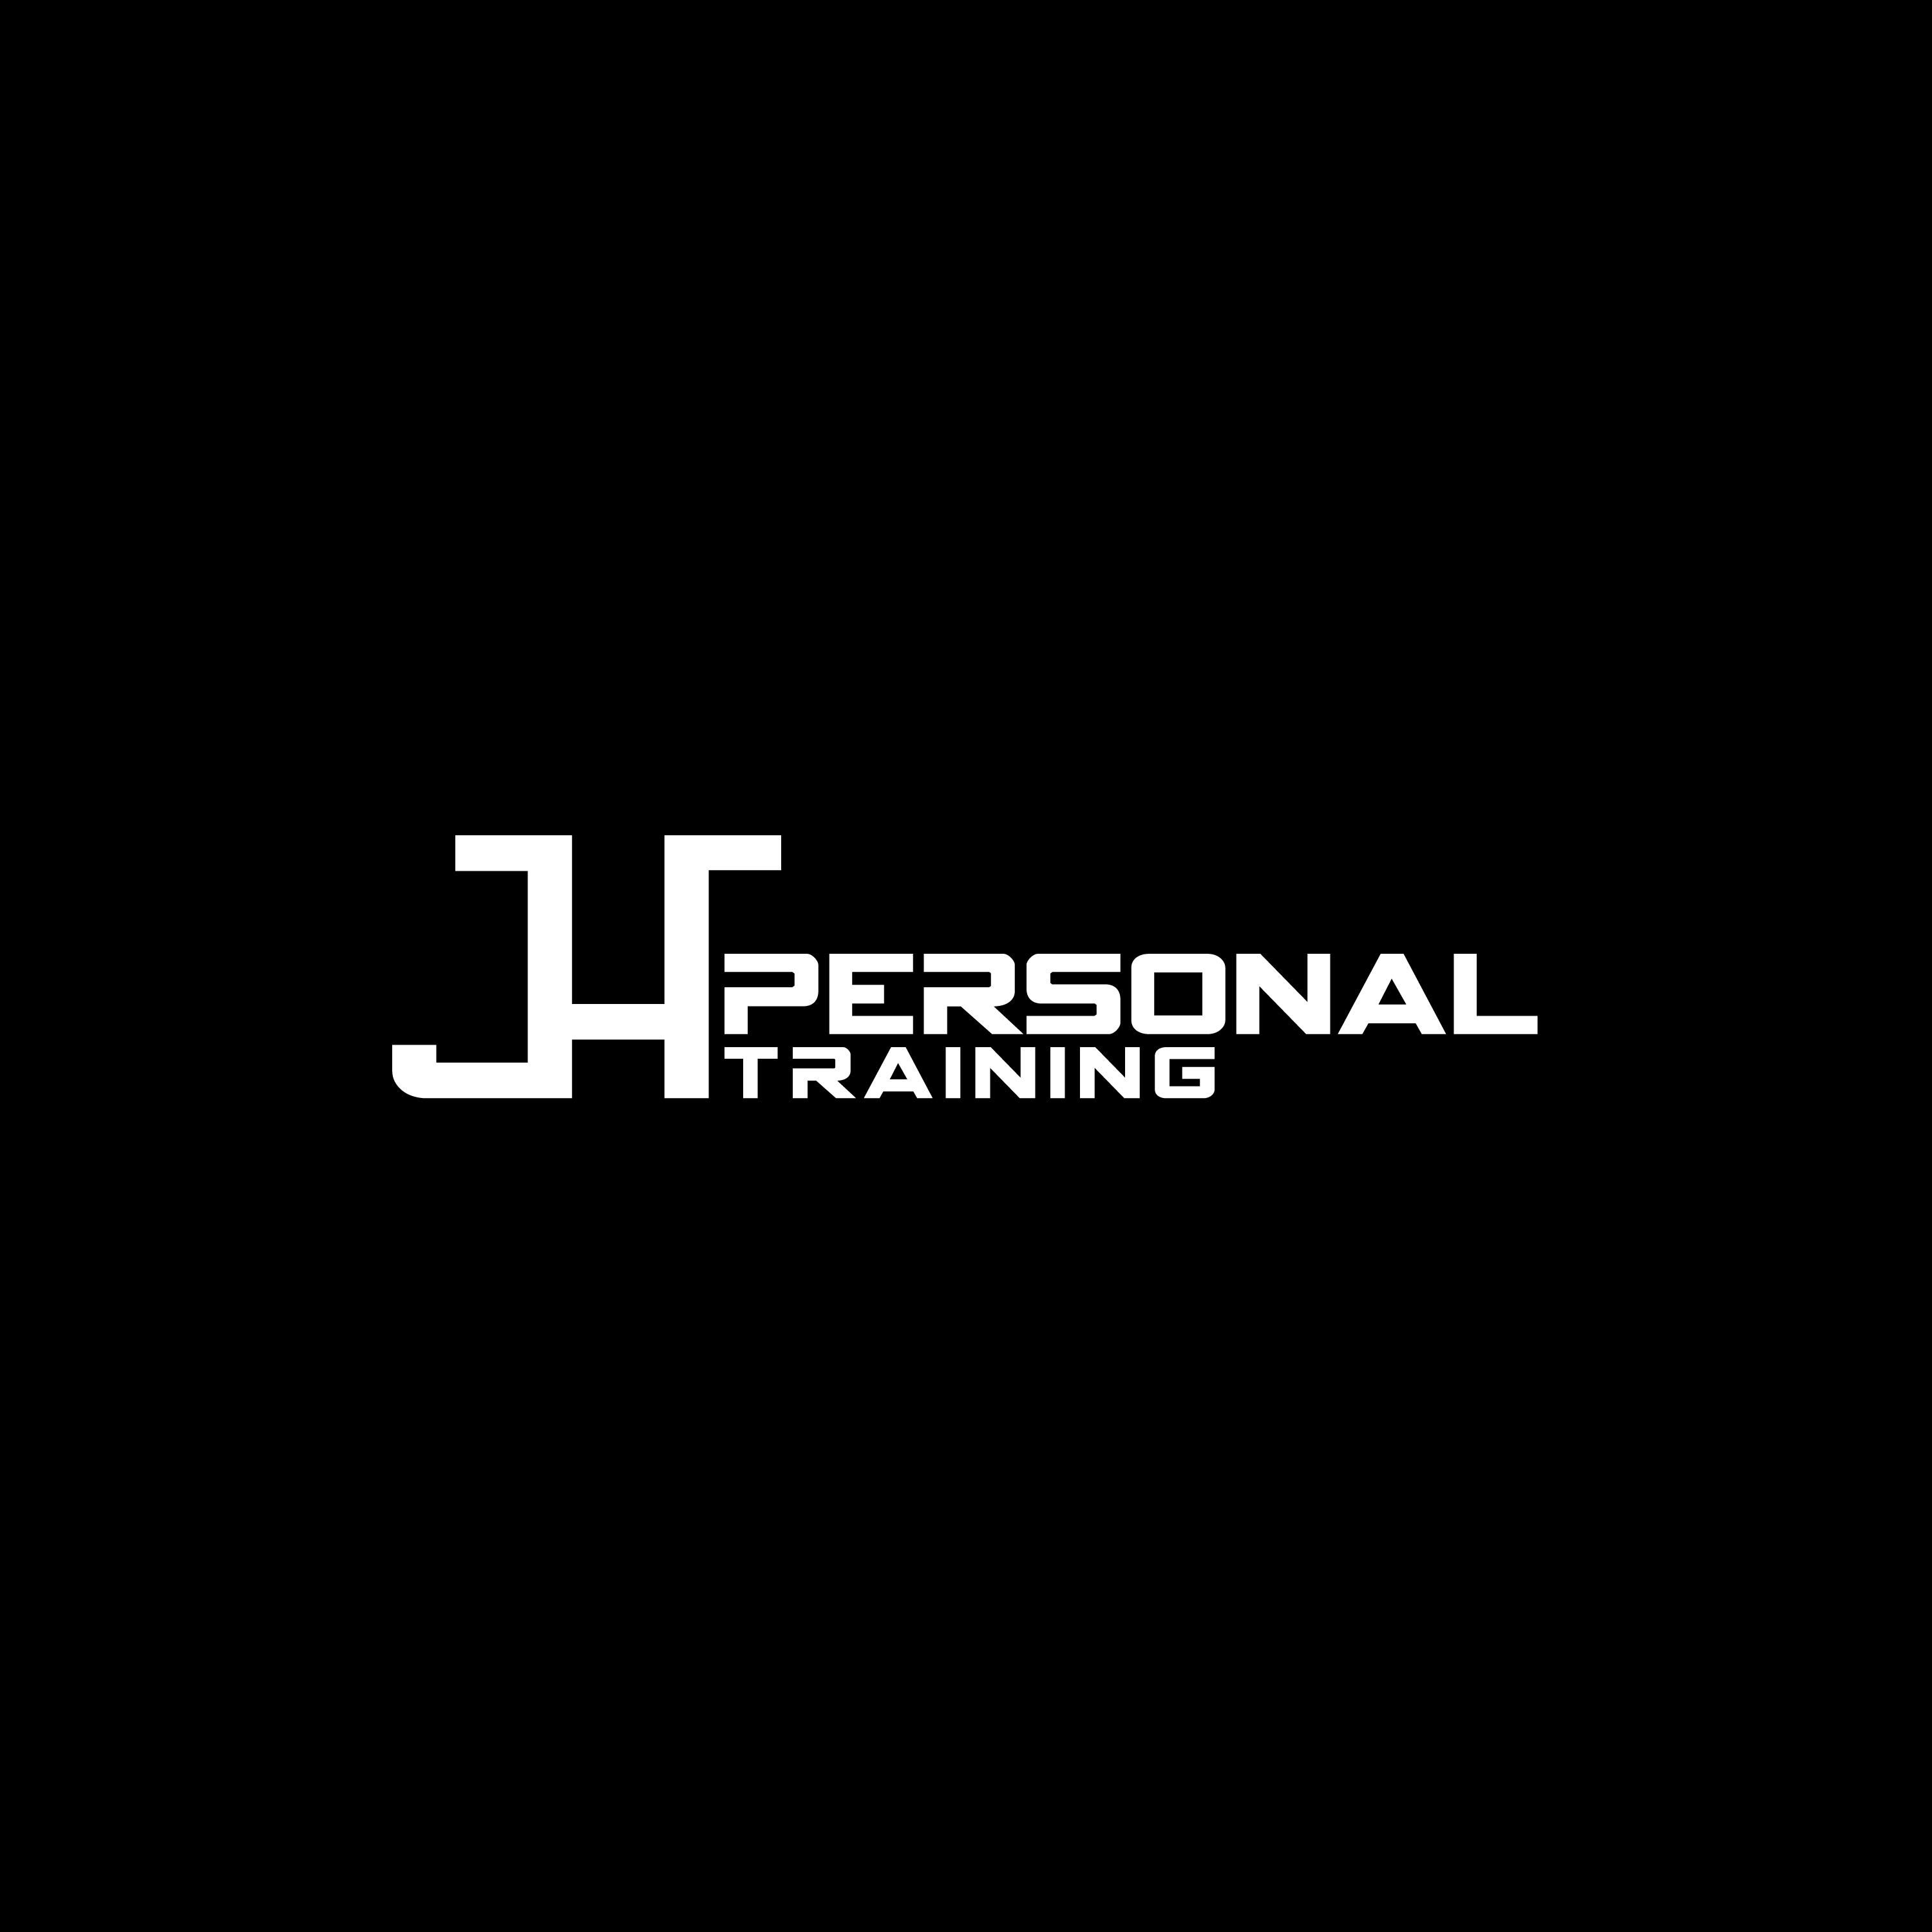 JH Personal Training  Logo